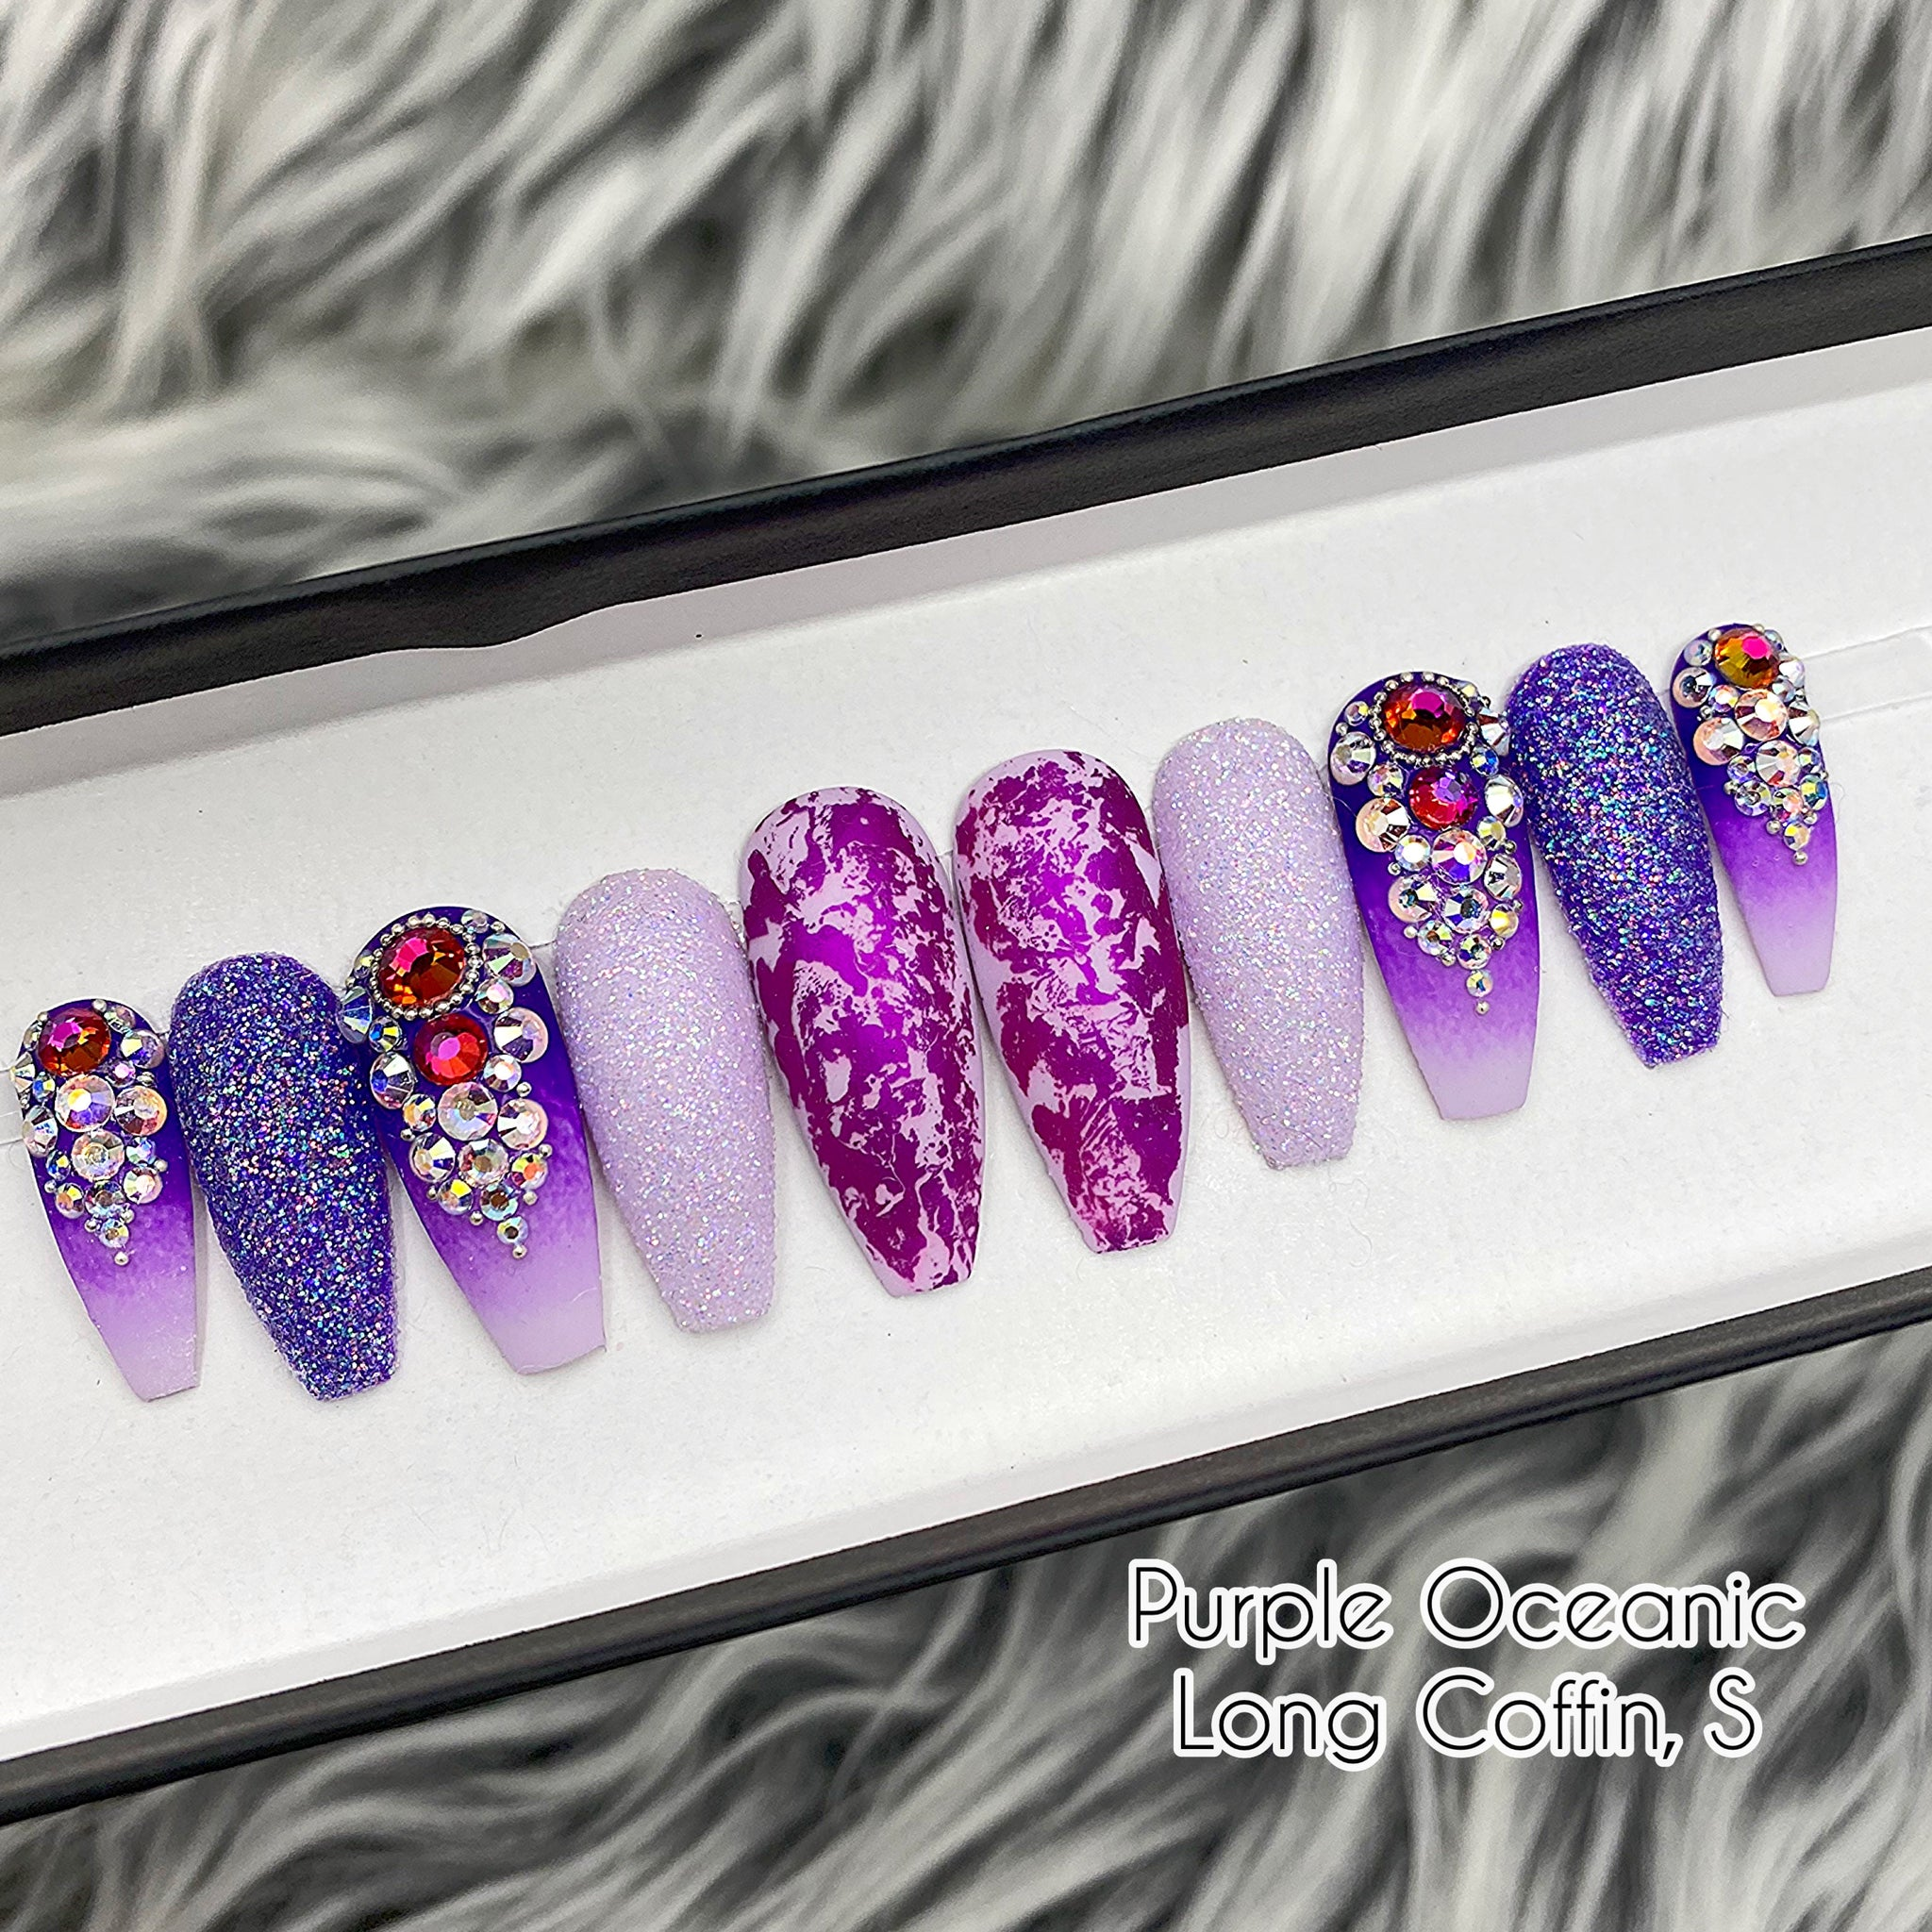 SAMPLE SET- PURPLE OCEANIC - LONG COFFIN, SIZE S